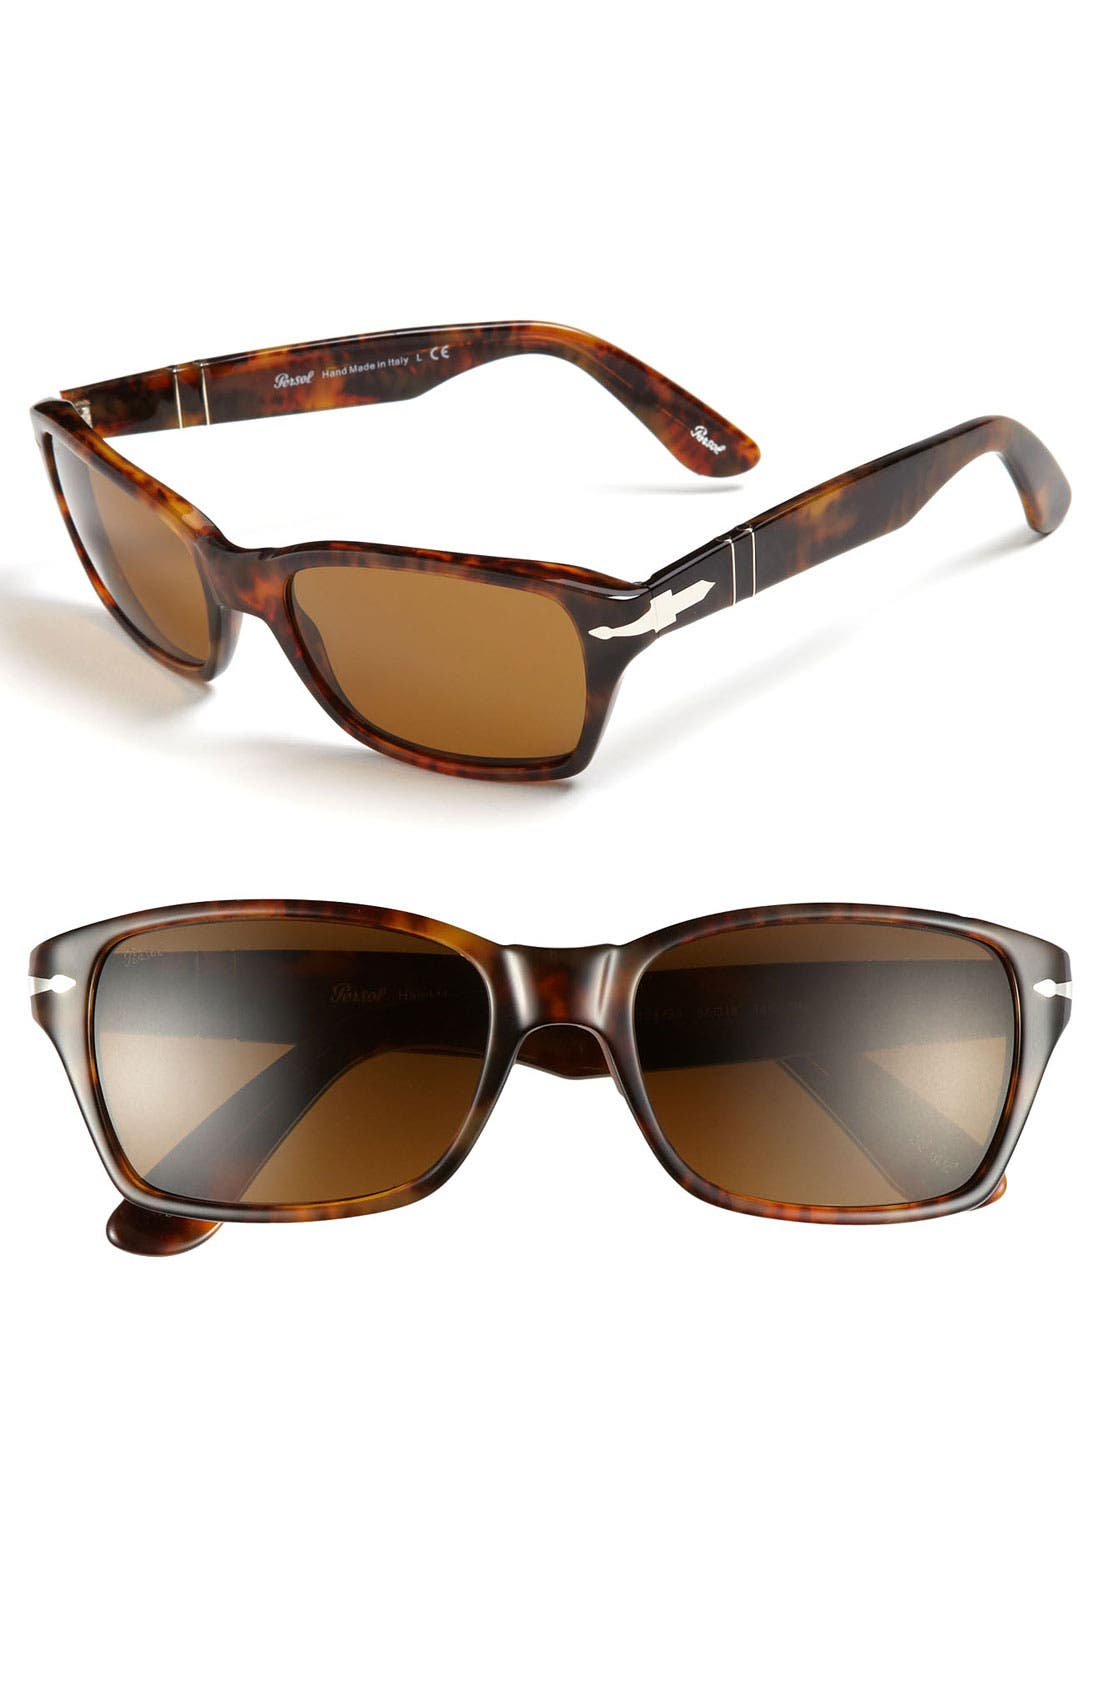 Alternate Image 1 Selected - Persol 56mm Sunglasses